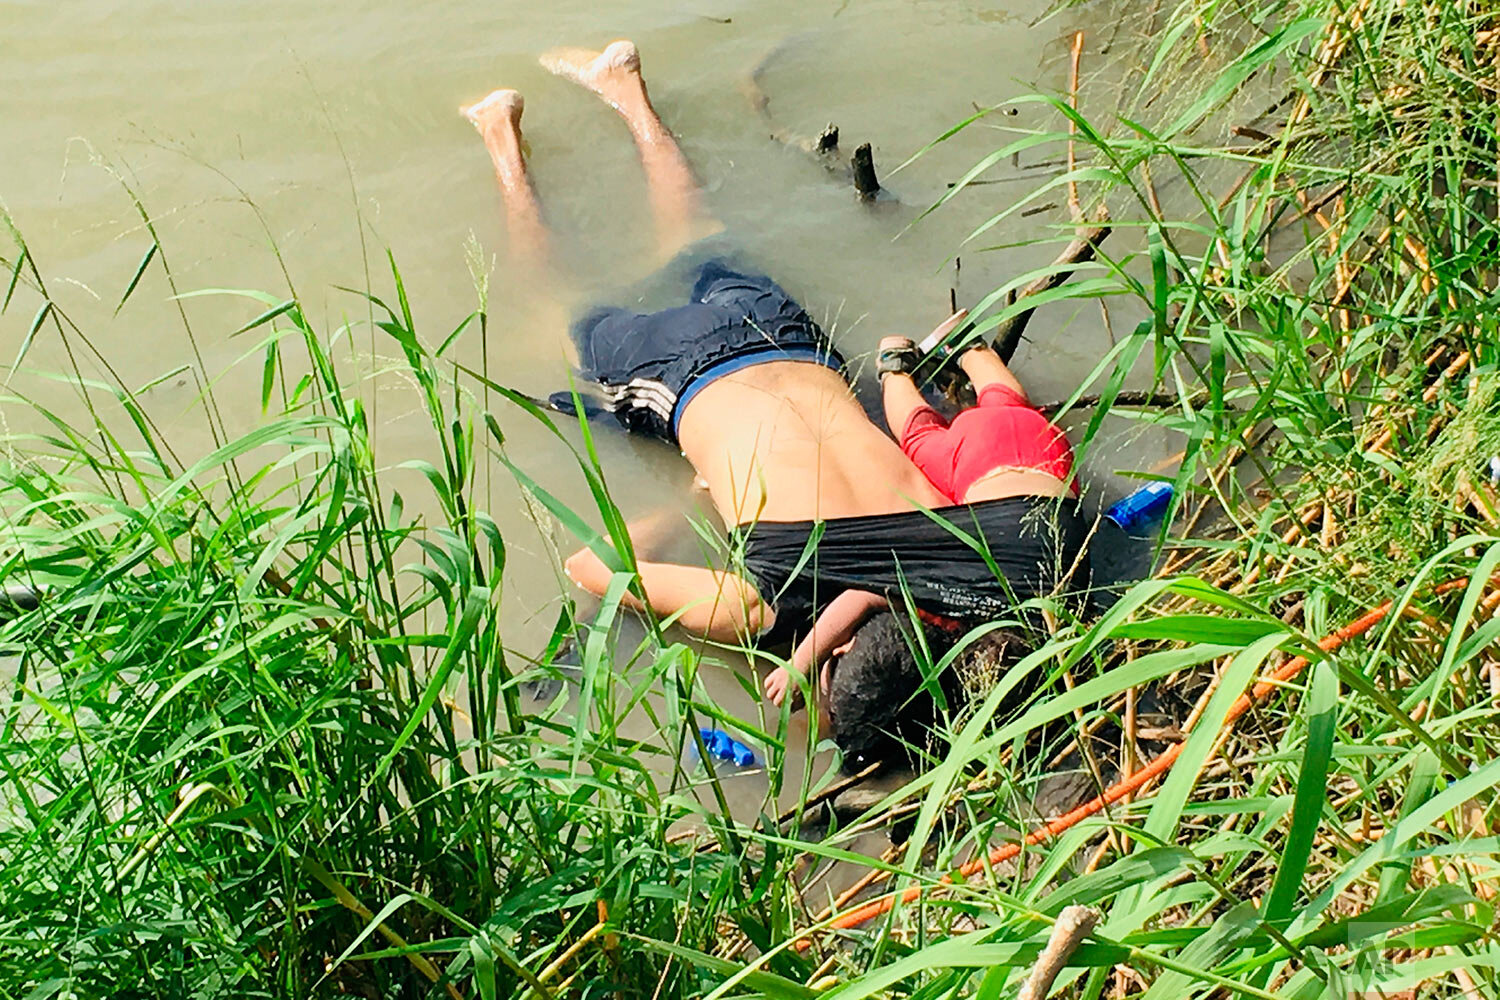 The bodies of Salvadoran migrant Oscar Alberto Martínez Ramírez and his nearly 2-year-old daughter Valeria lie on the bank of the Rio Grande in Matamoros, Mexico, on June 24, 2019, after they drowned trying to cross the river to Brownsville, Texas. Martinez' wife, Tania told Mexican authorities she watched her husband and child disappear in the strong current. (AP Photo/Julia Le Duc)